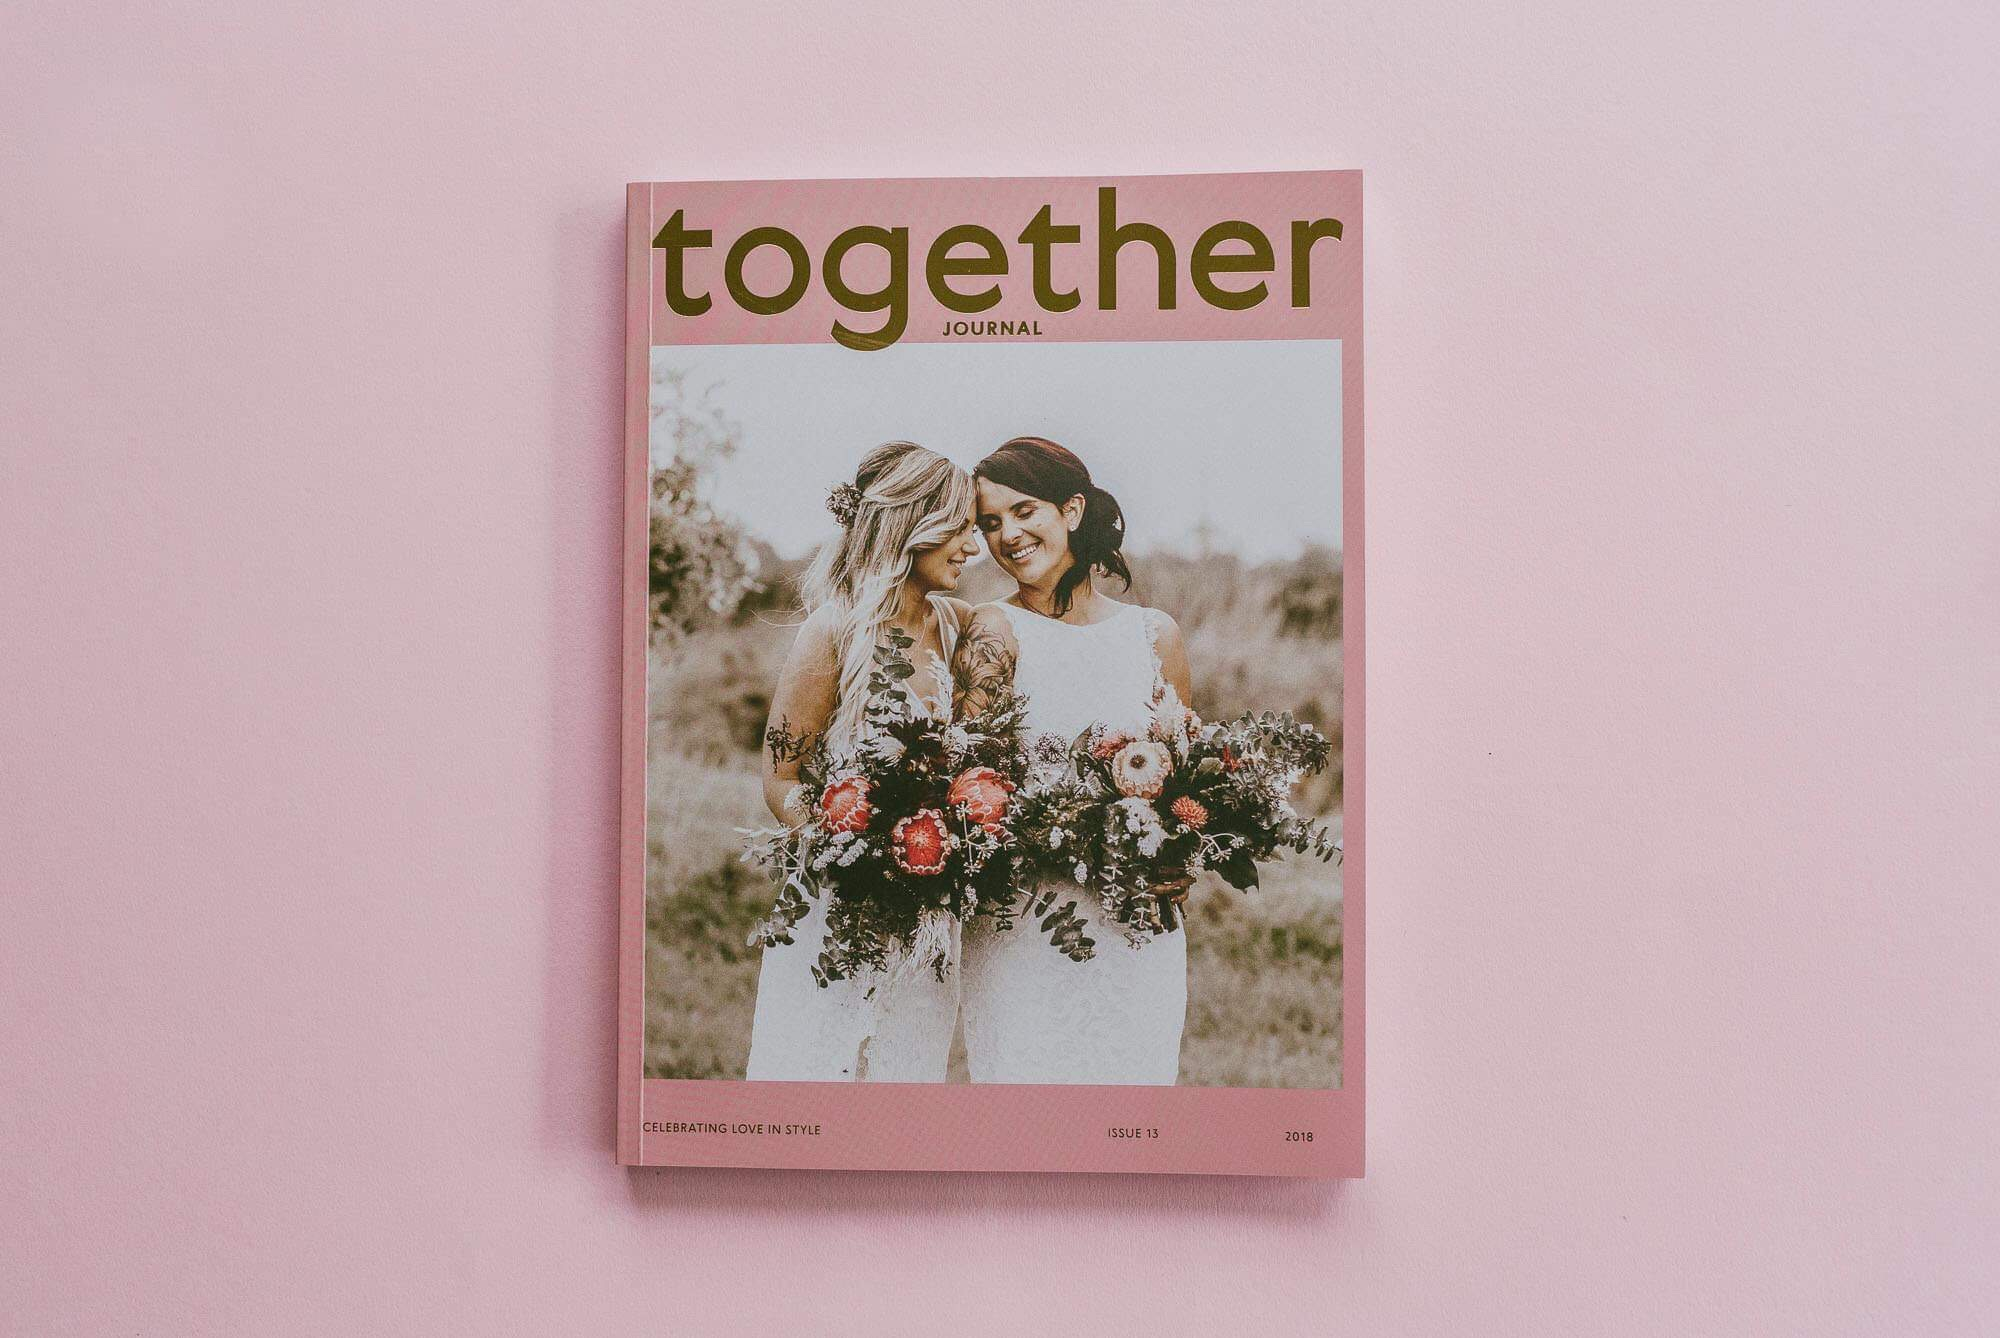 Together Journal # 13